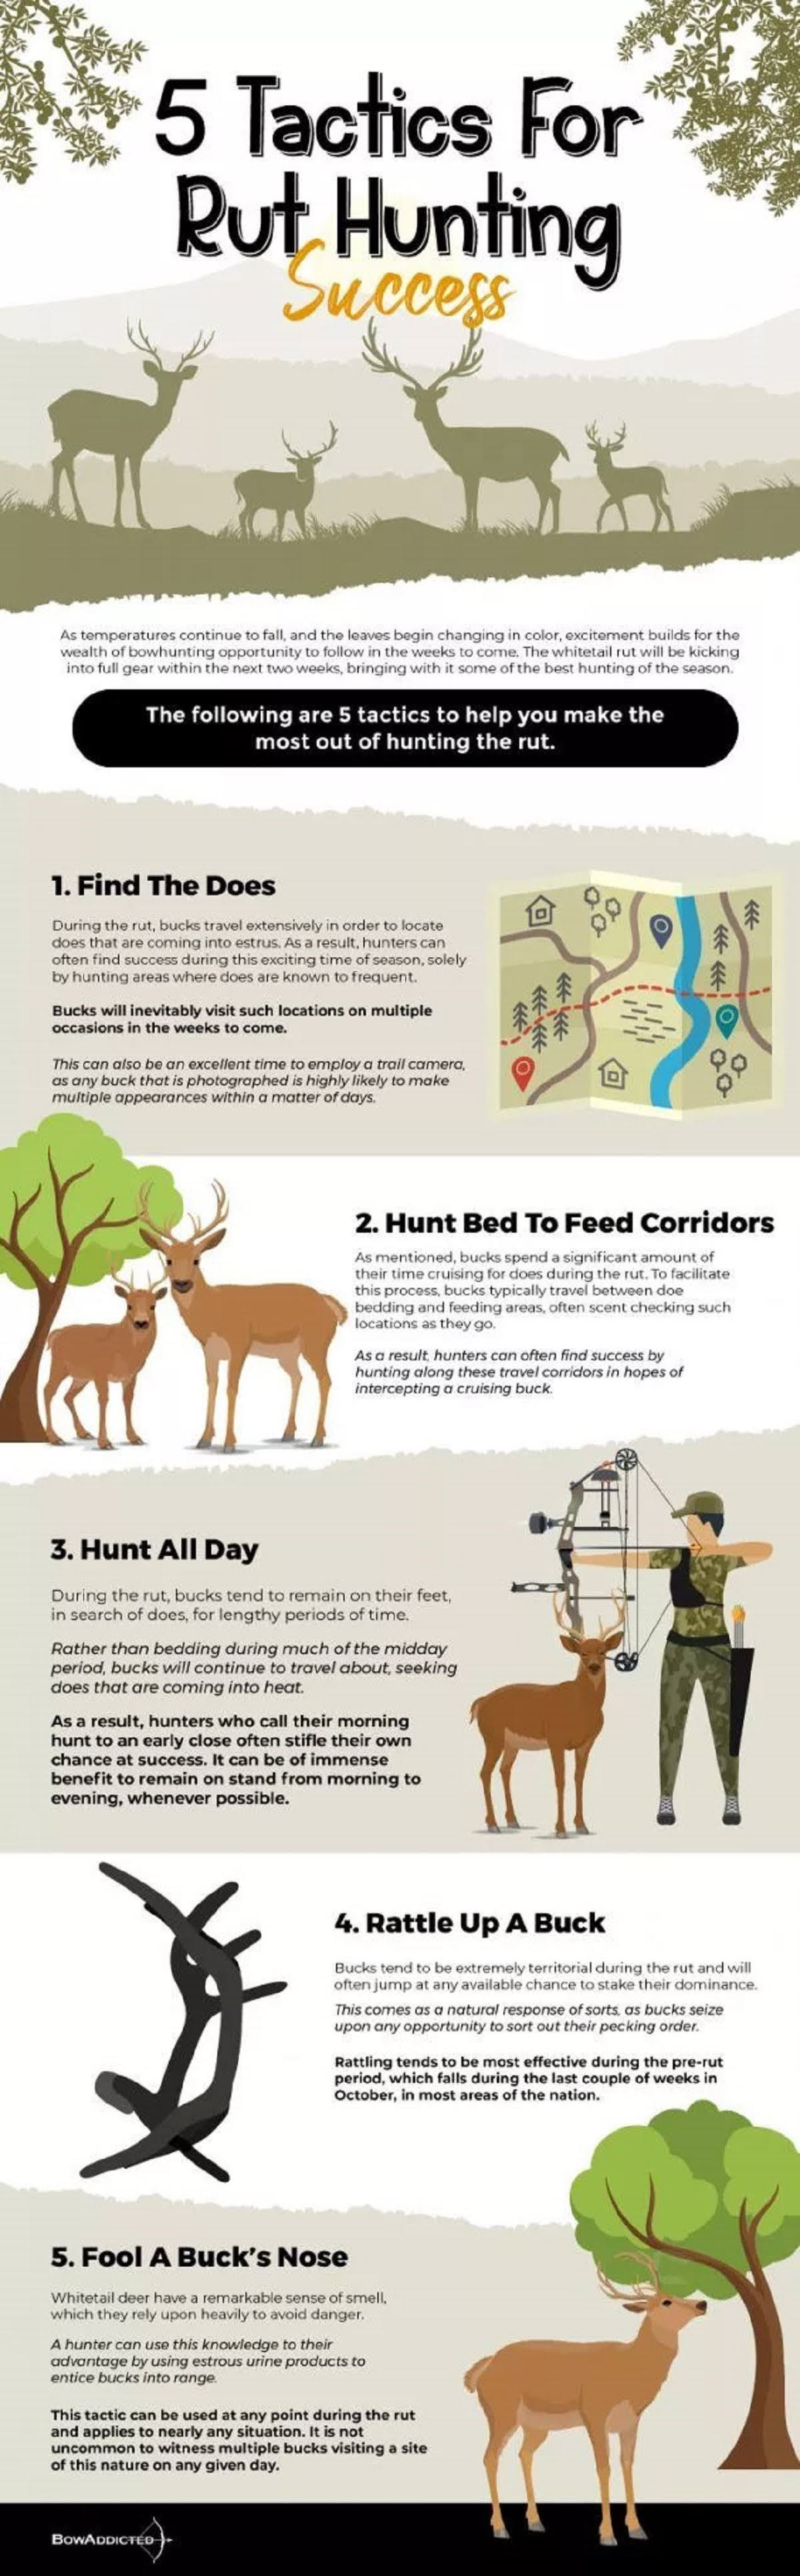 5-tactics-for-rut-hunting-success-infographic